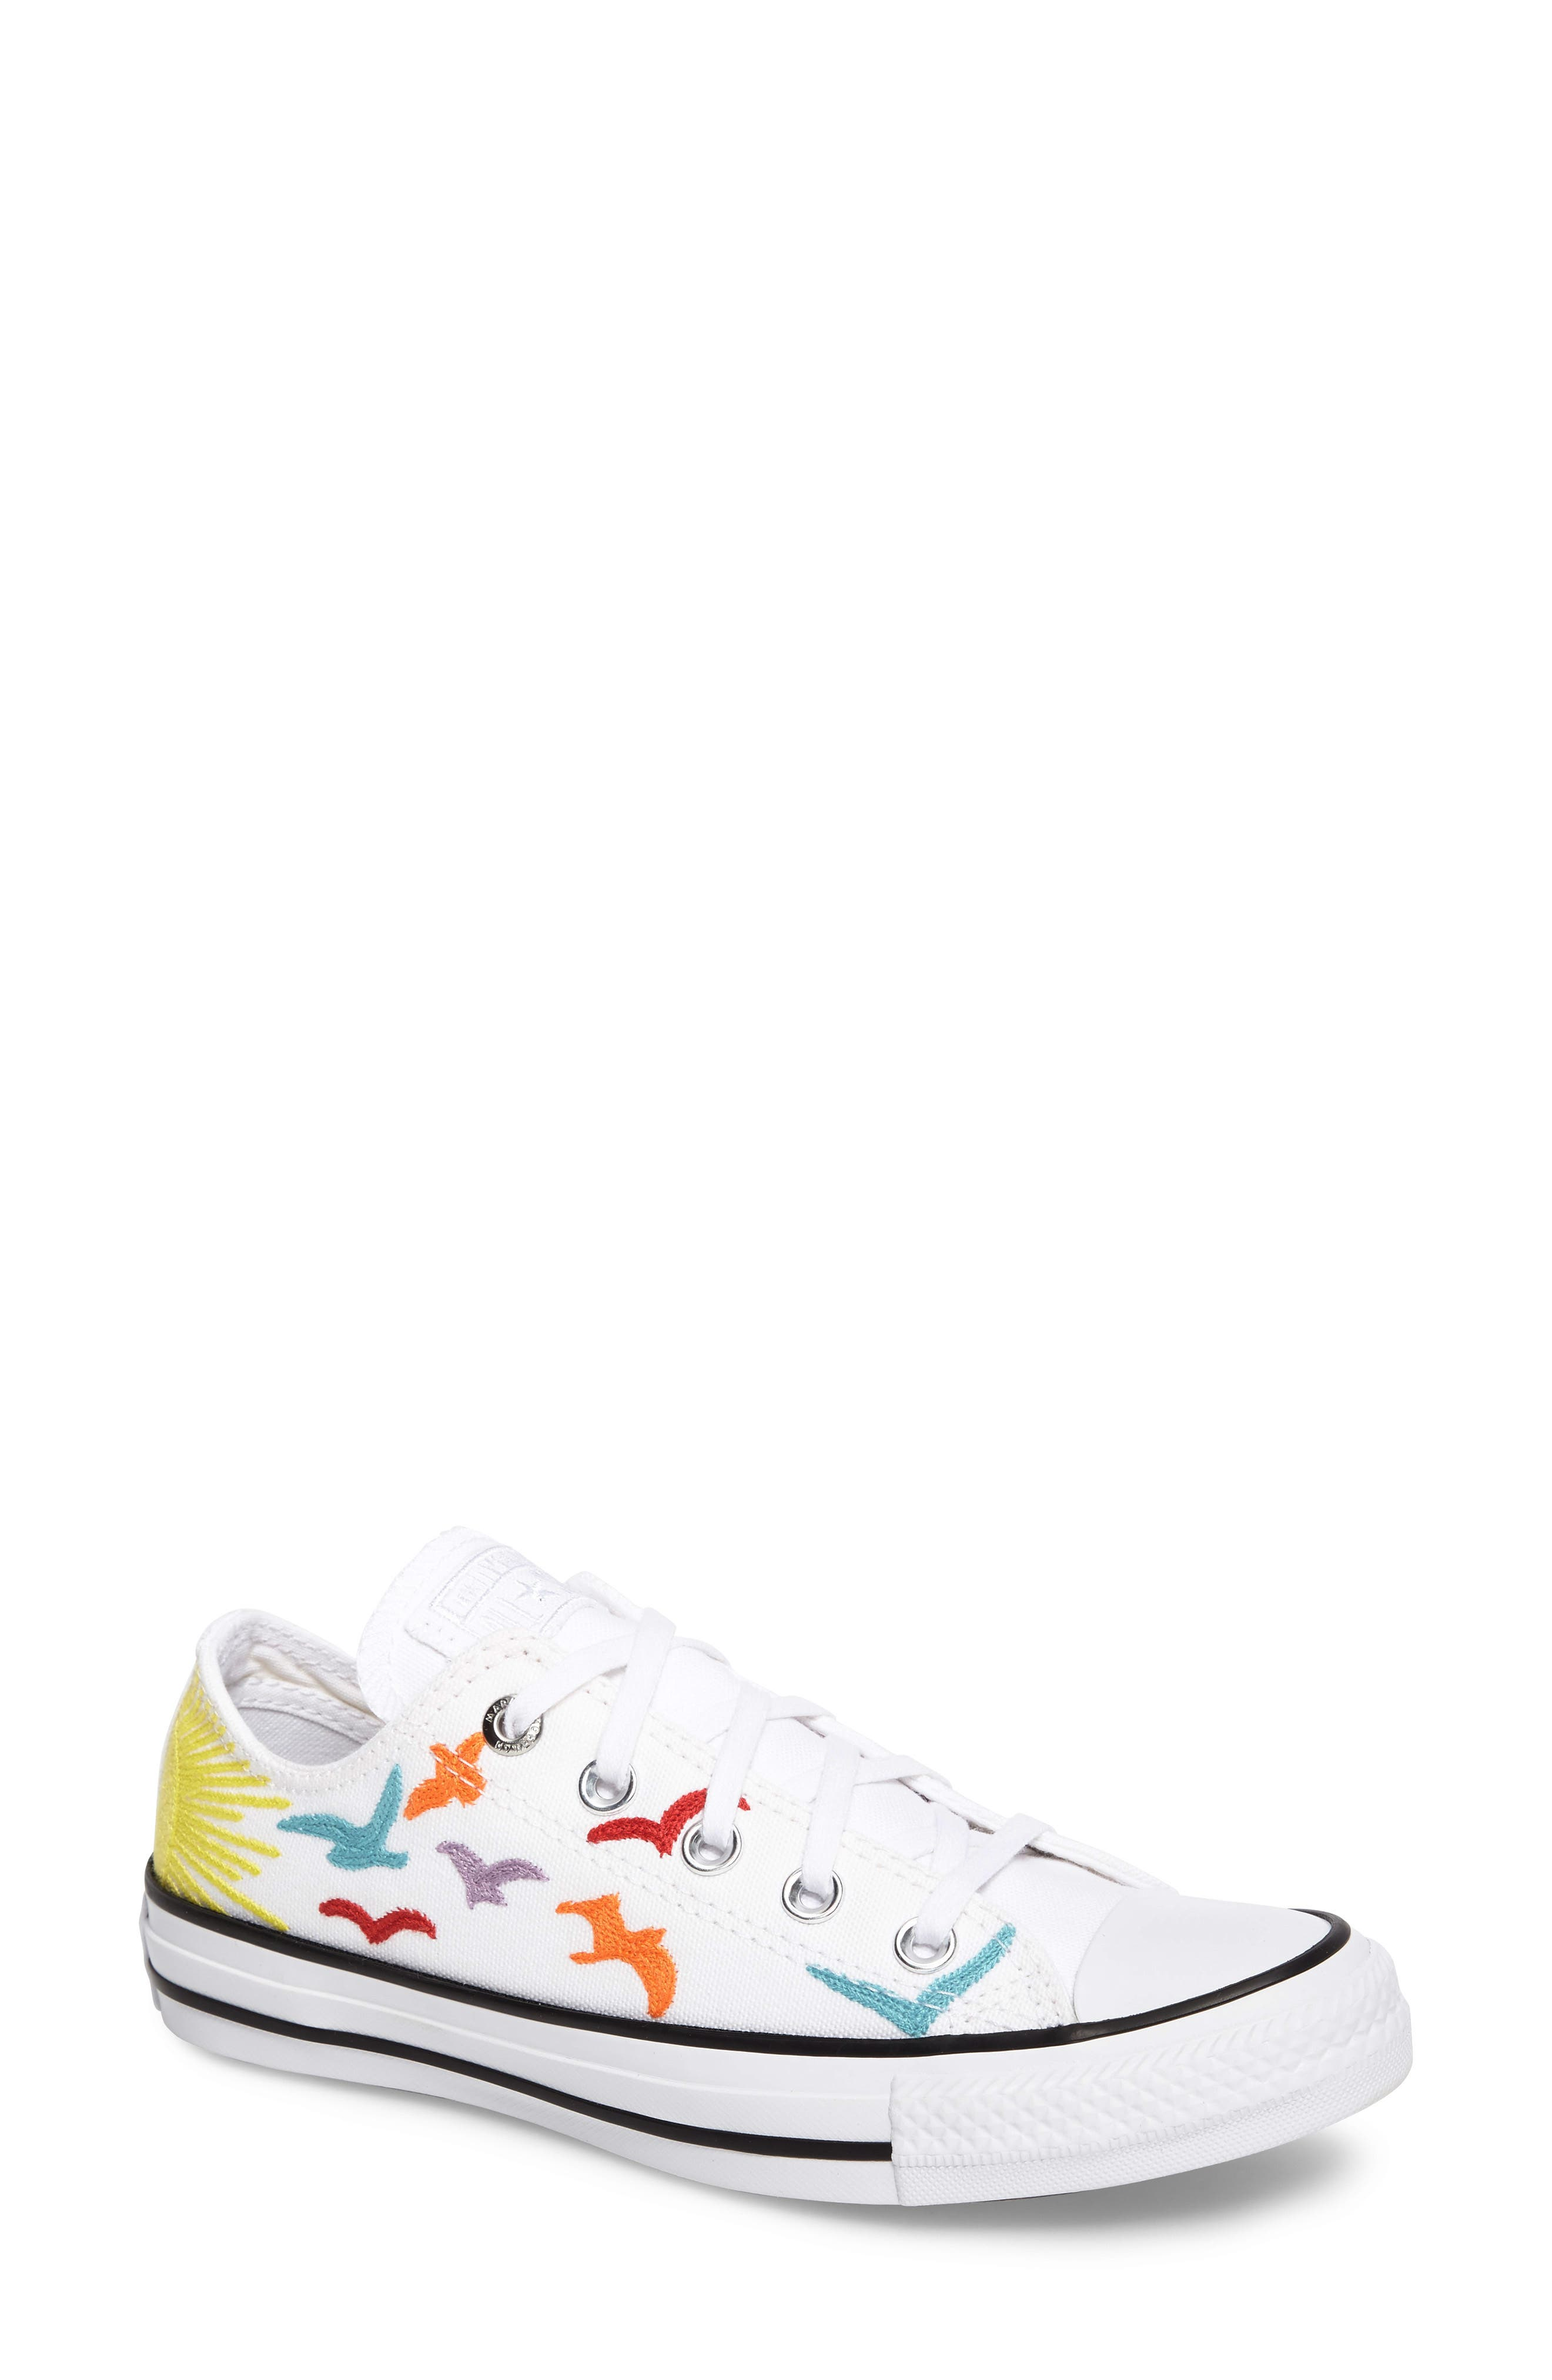 x Mara Hoffman All Star<sup>®</sup> Embroidered Ox Sneaker, Main, color, 100